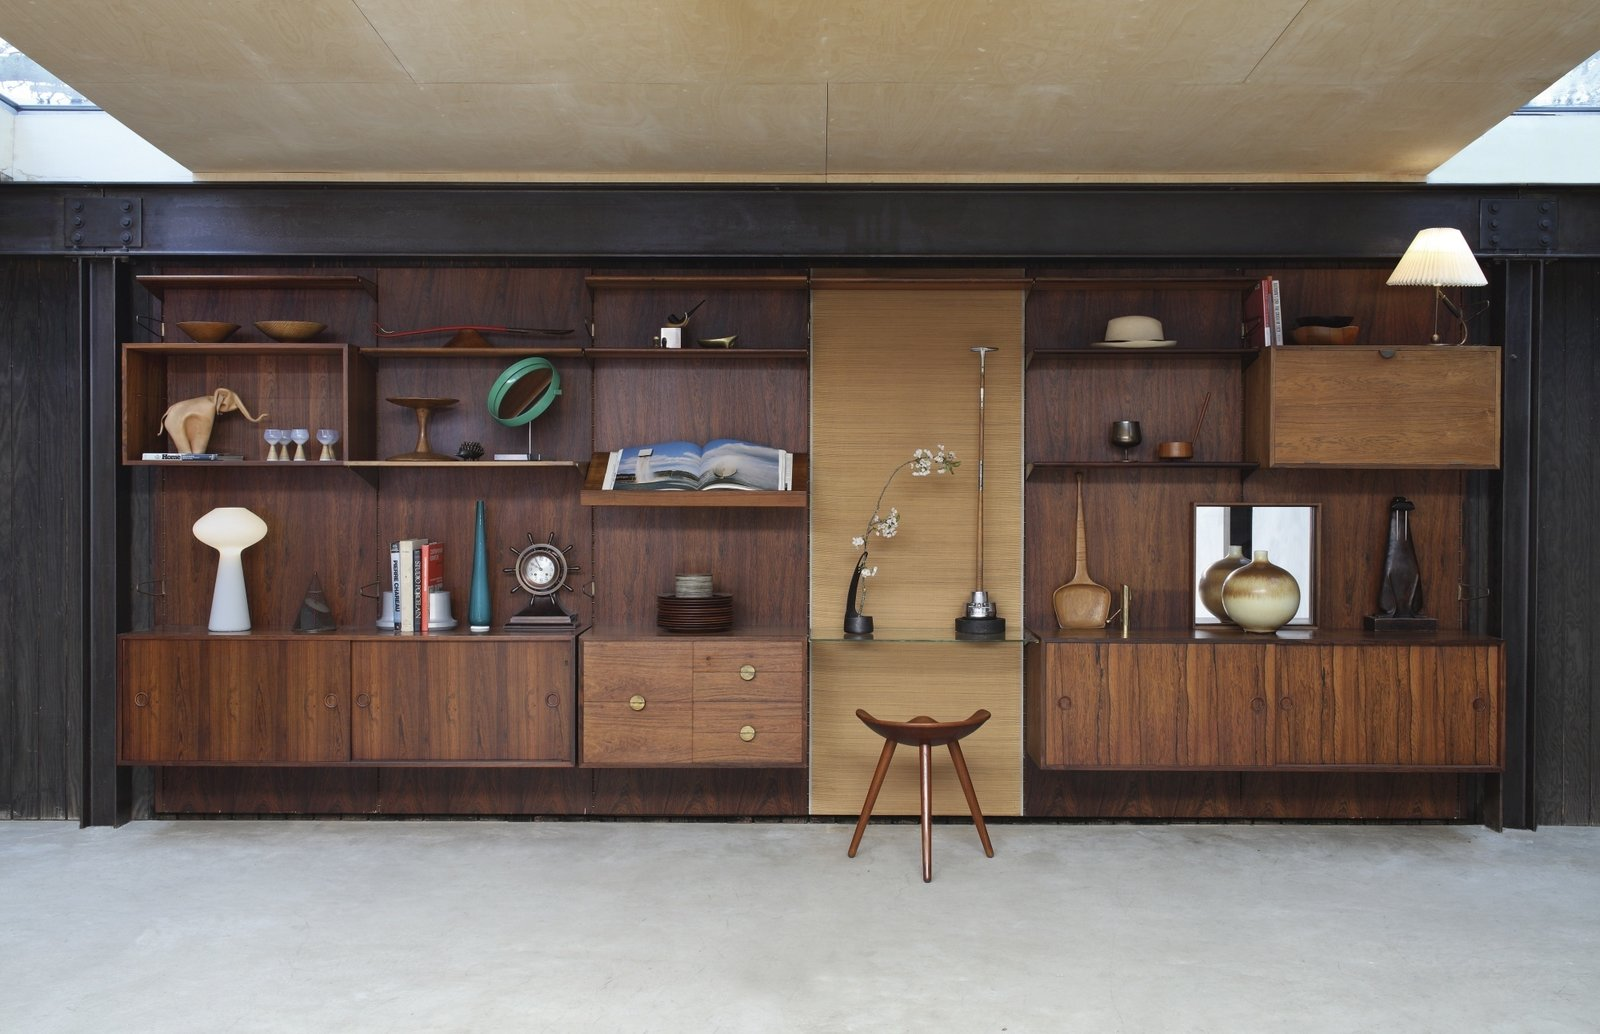 Photo 1 of 10 in Next Week Marks Sotheby's Sale of Iconic Design Pieces From WYETH's Coveted Collection